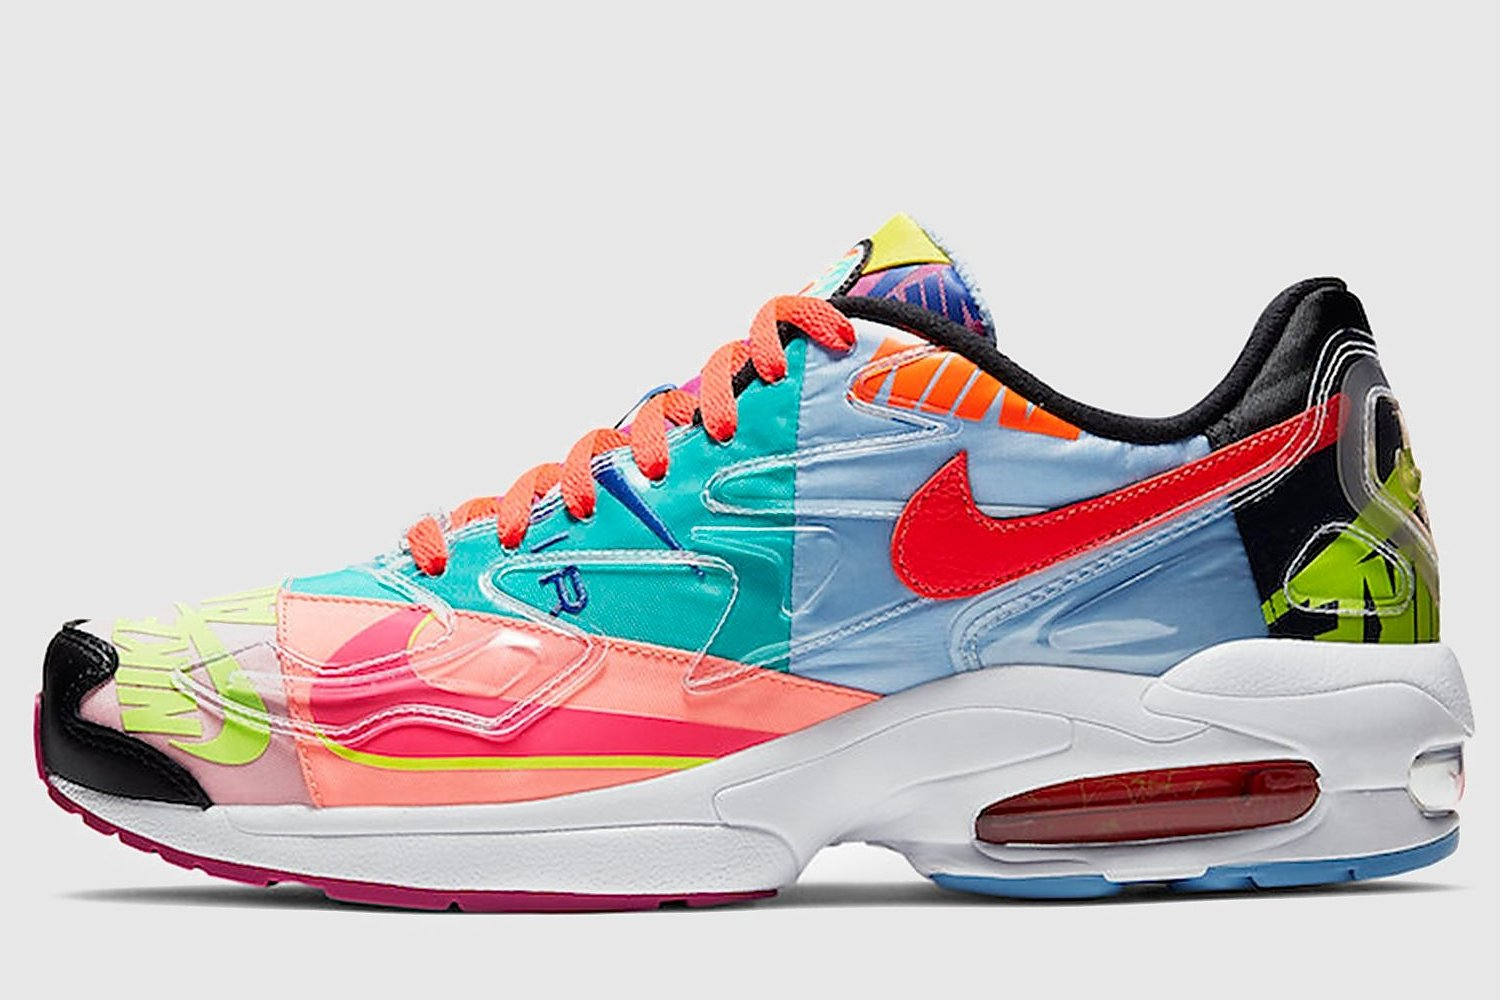 nike-air max 2 light-dames-multicolor-bv7406-001-multicolor-sneakers-dames